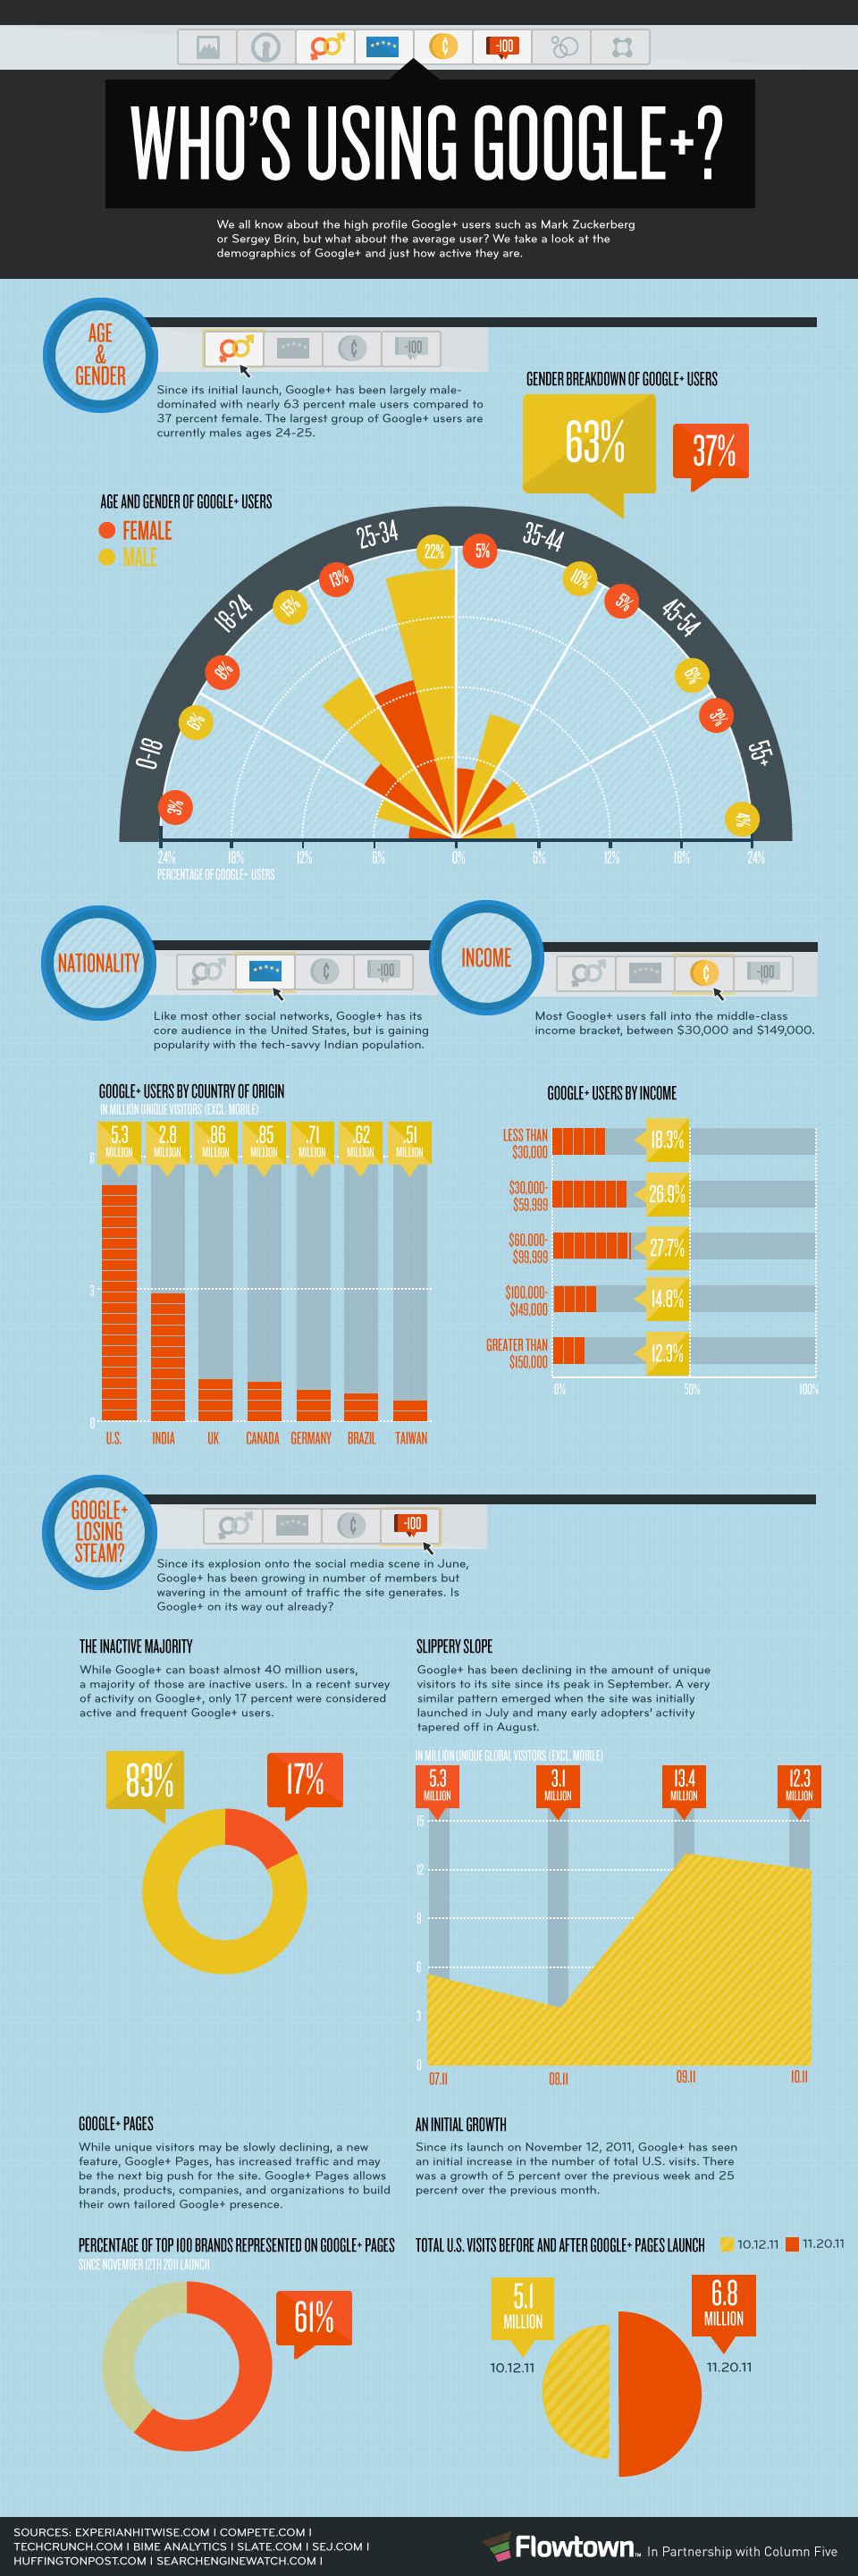 Google Plus Infographic - Who Uses Google+